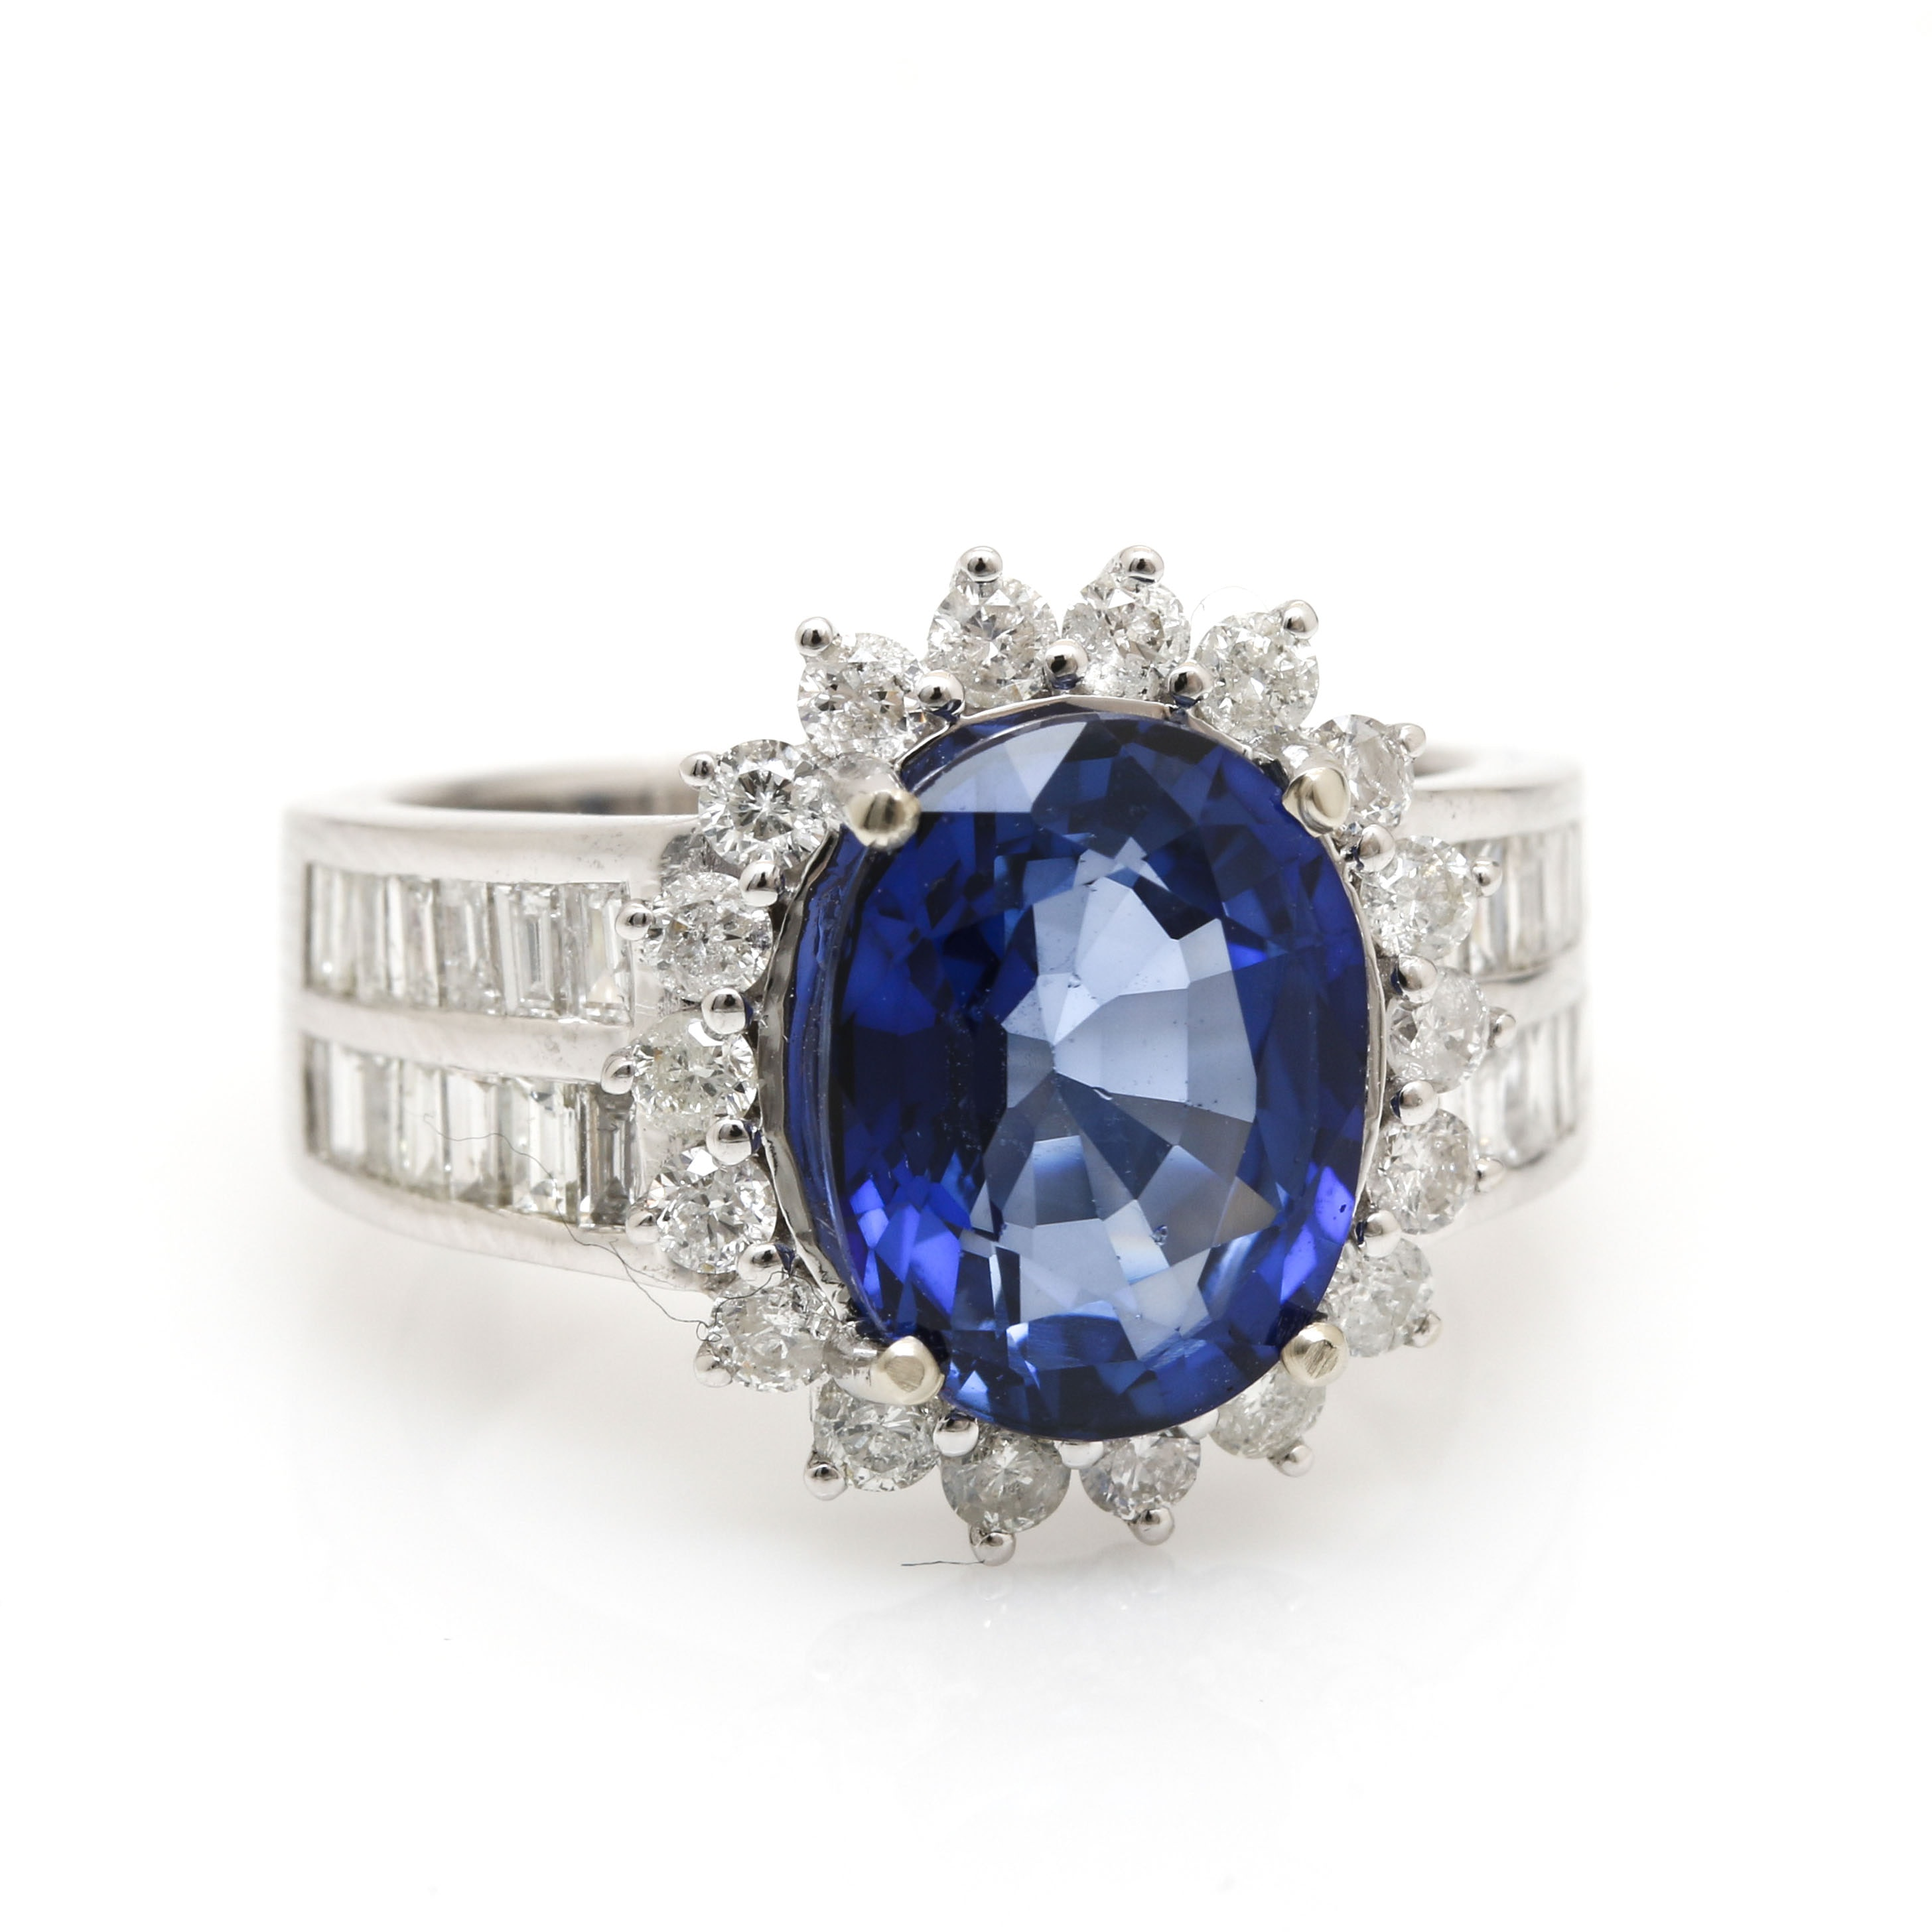 14K White Gold 4.43 CT Blue Sapphire and 1.25 CTW Diamond Ring